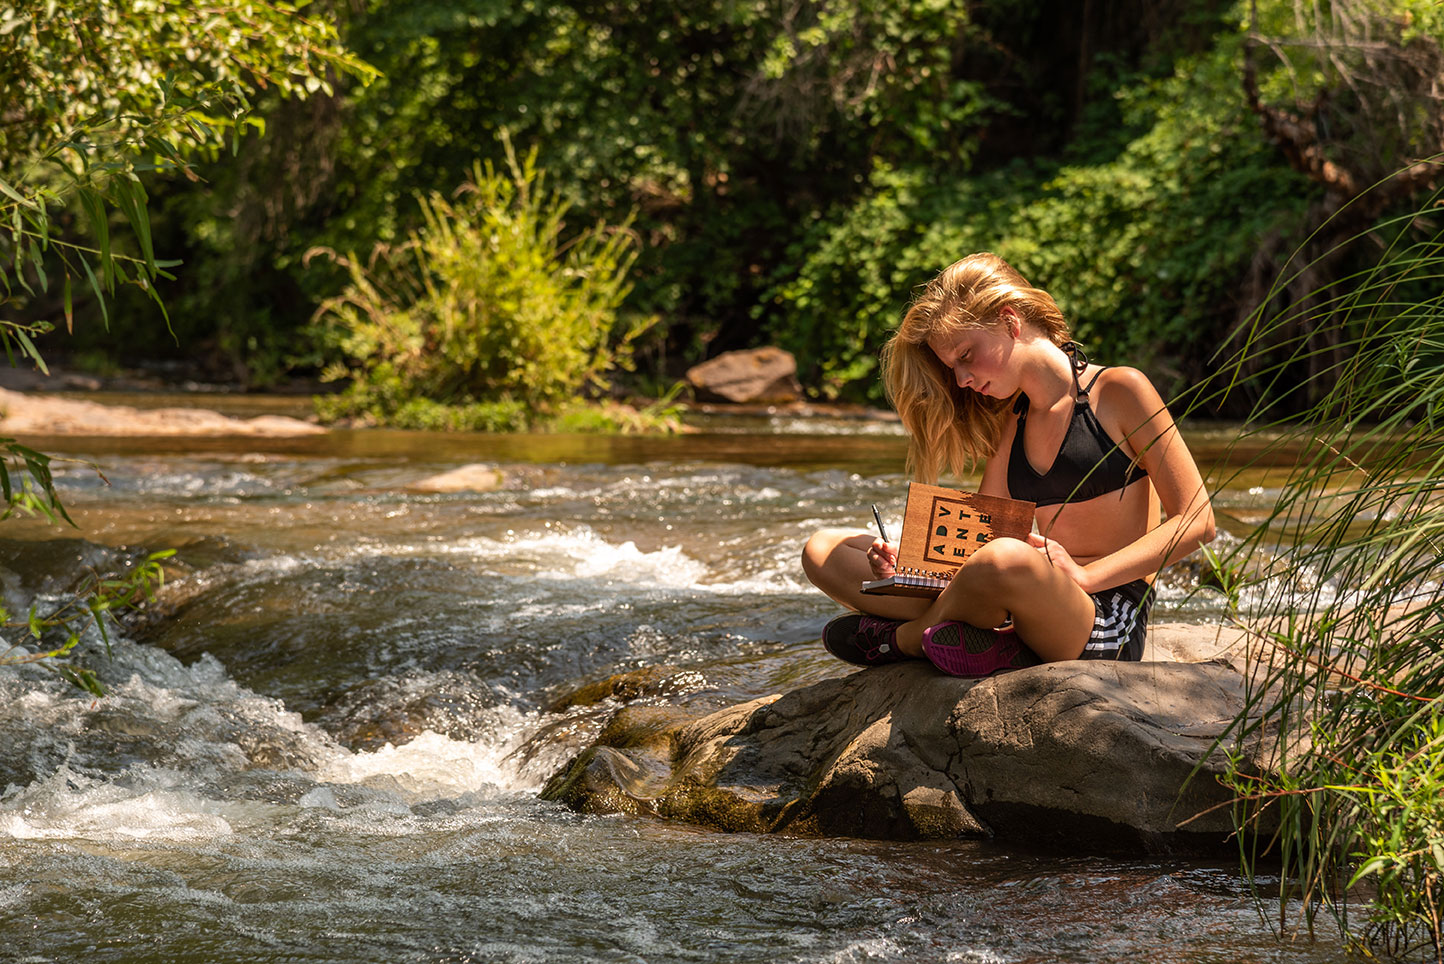 Woodchuck USA Wooden Journal Oak Creek Sedona, Az. Daniel Britton Lifestyle Photographer